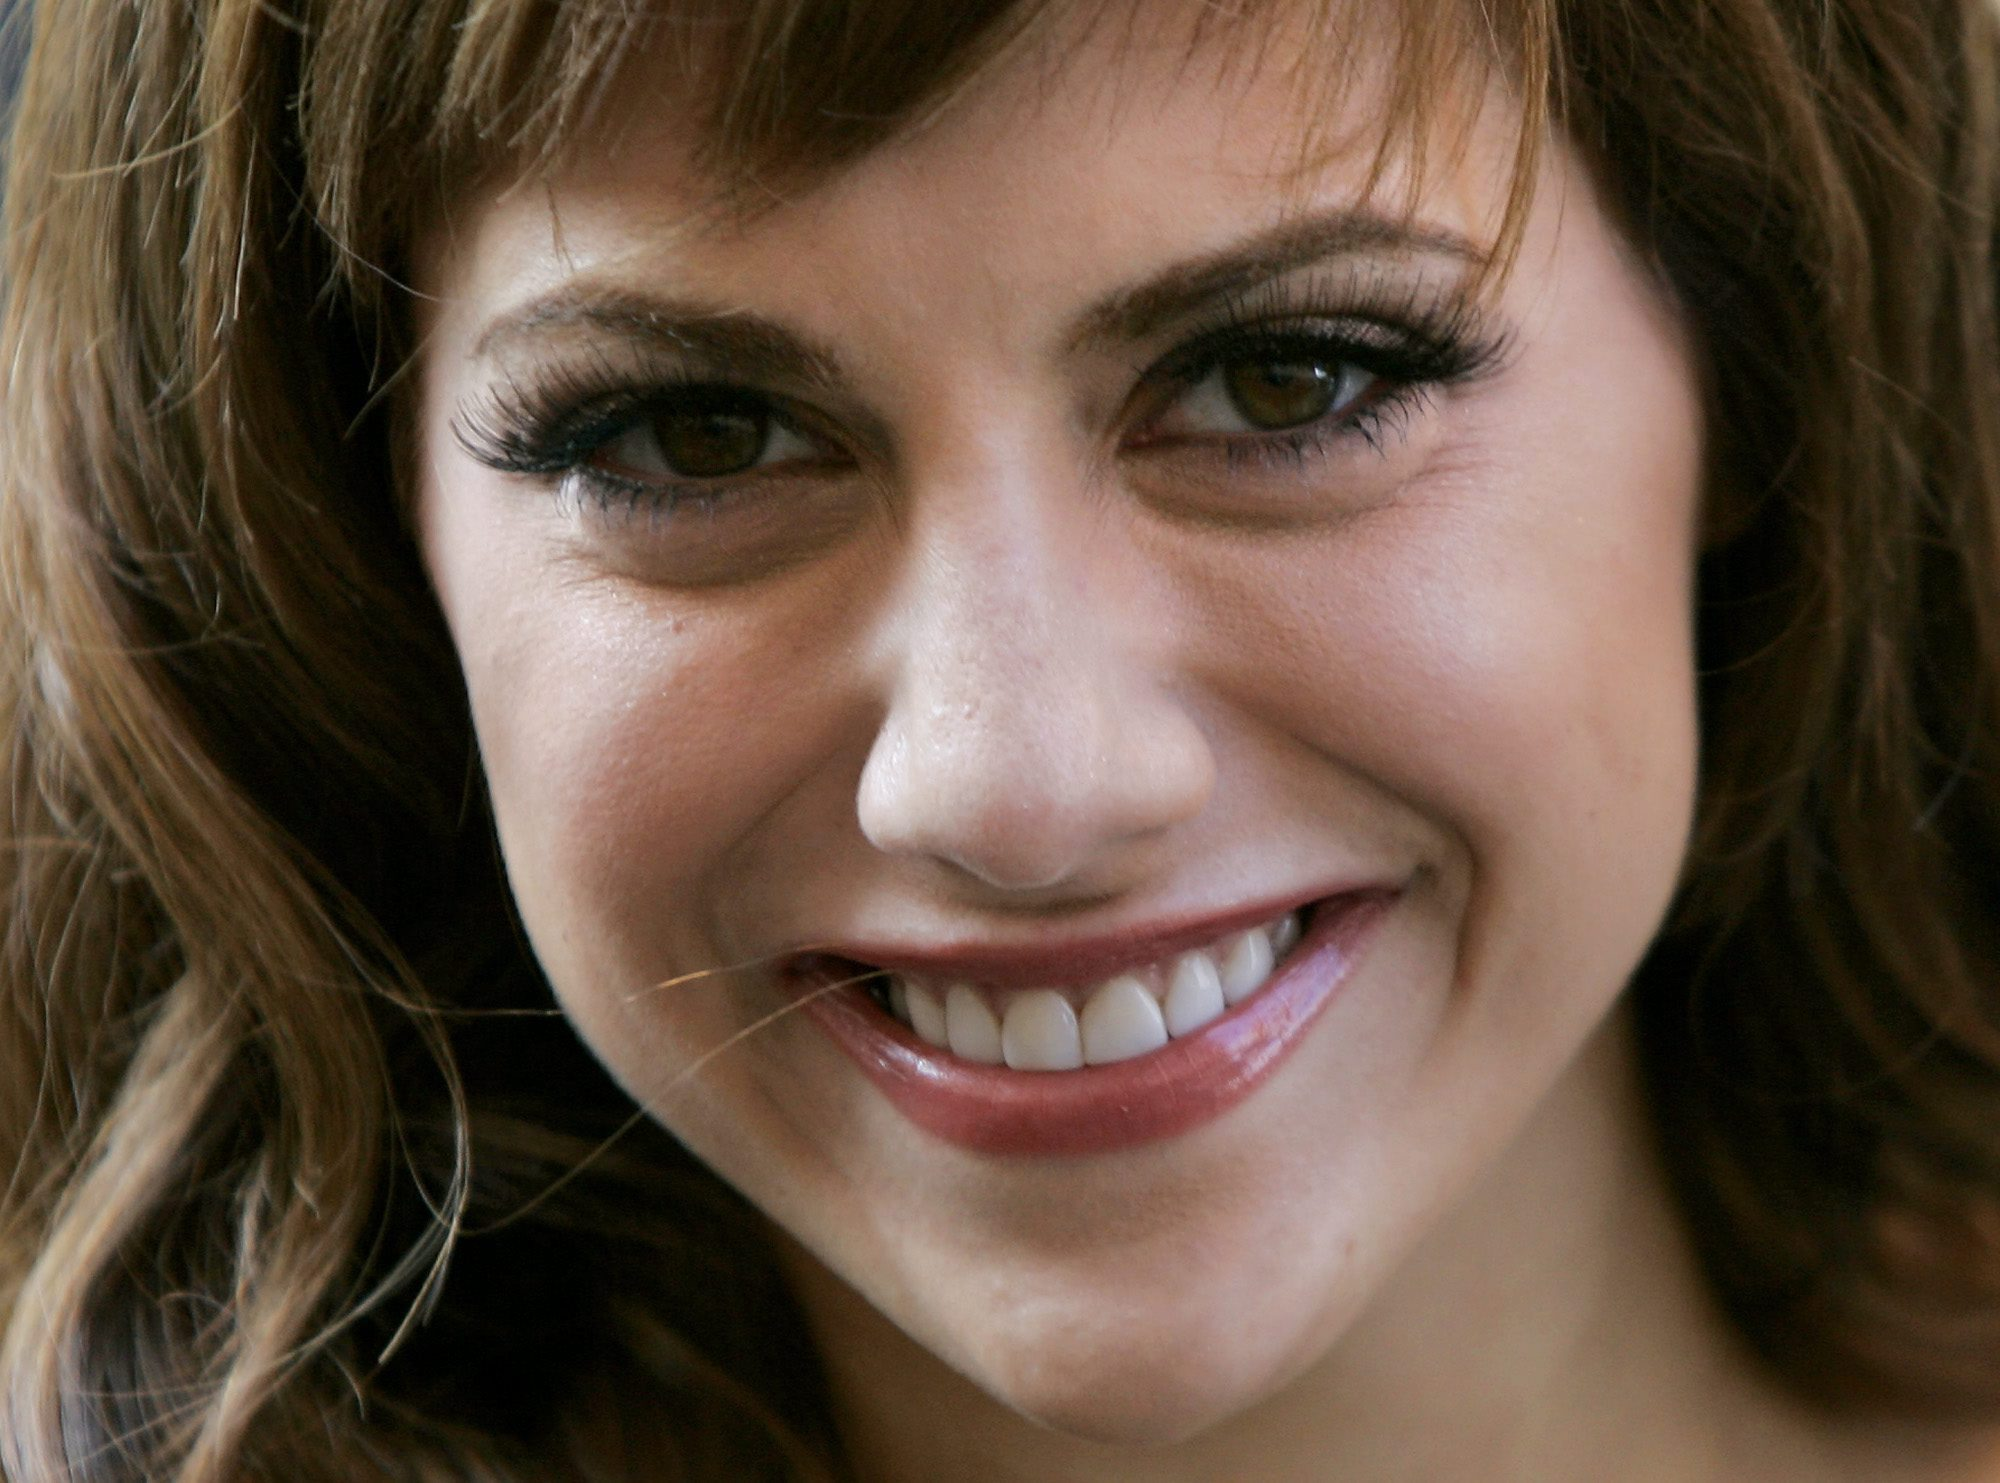 Death Of Actress Brittany Murphy Explored In New Investigation Discovery Documentary